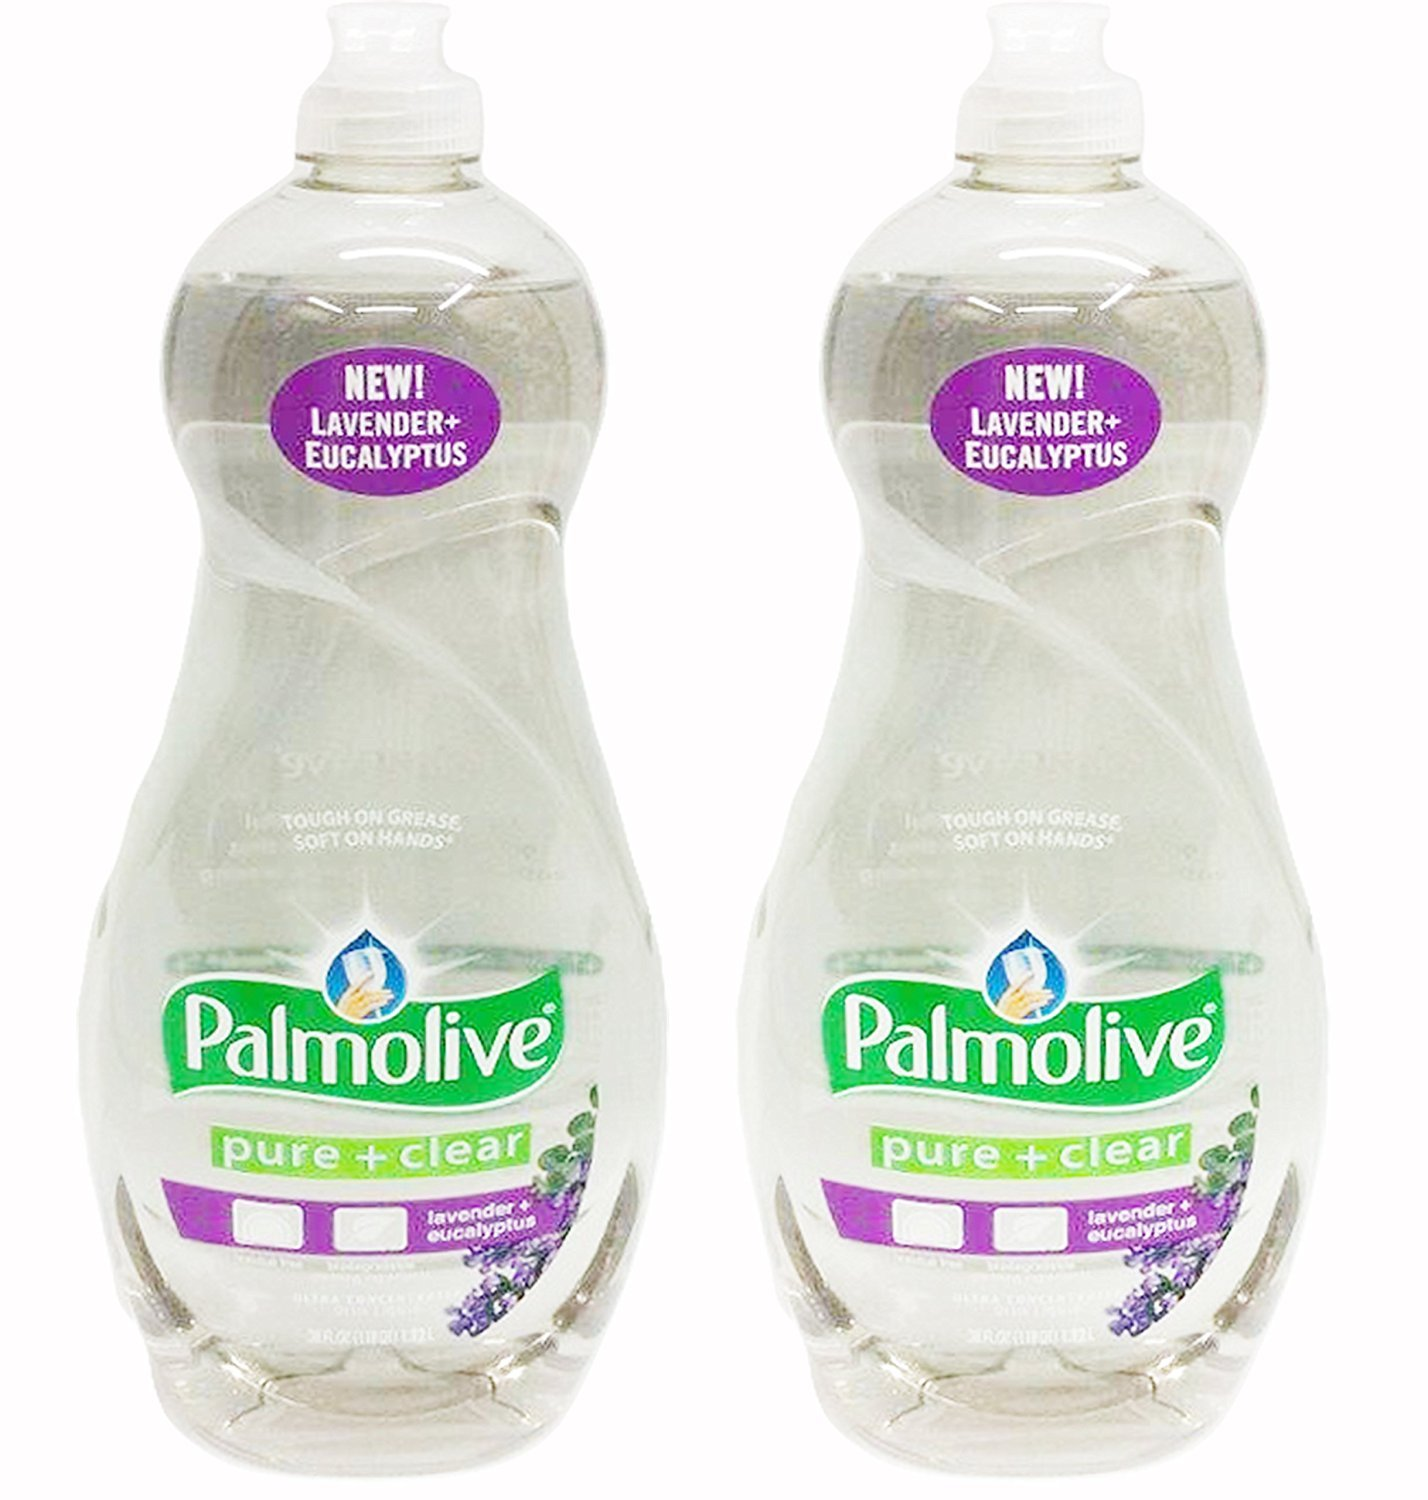 Palmolive Ultra Dish Washing Liquid - 10 oz - Pure & Clear - 2 pk by palmolive